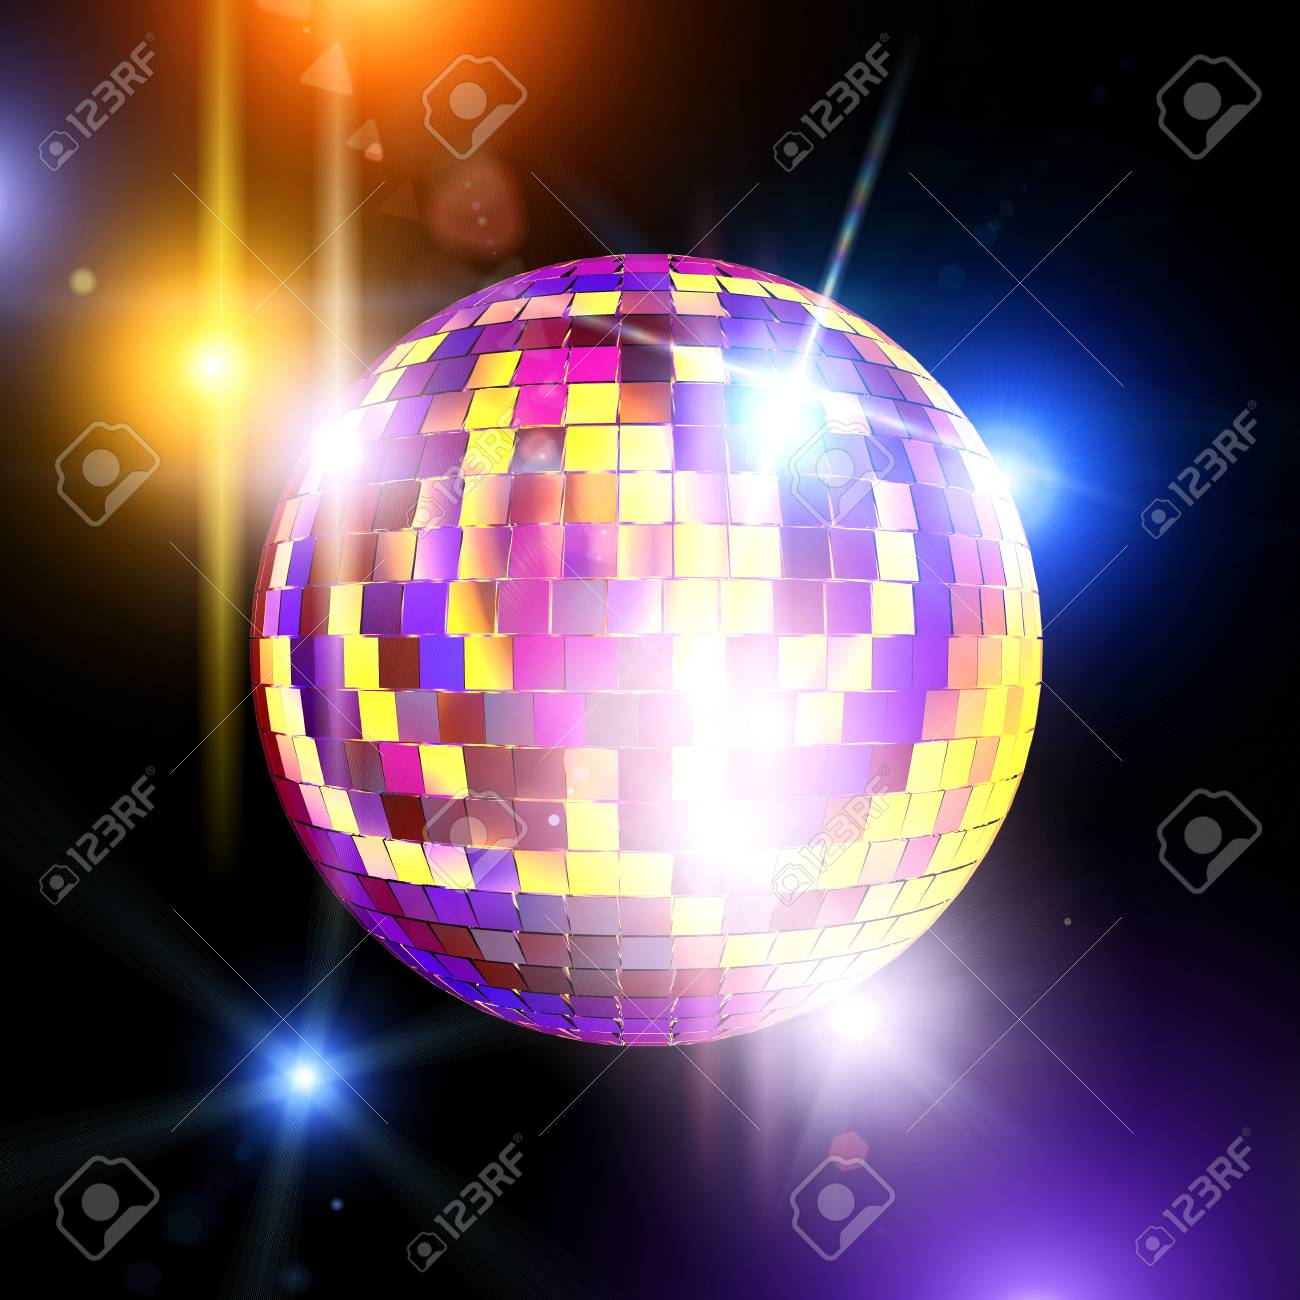 mirror ball and disco lights 3d rendering image stock photo picture